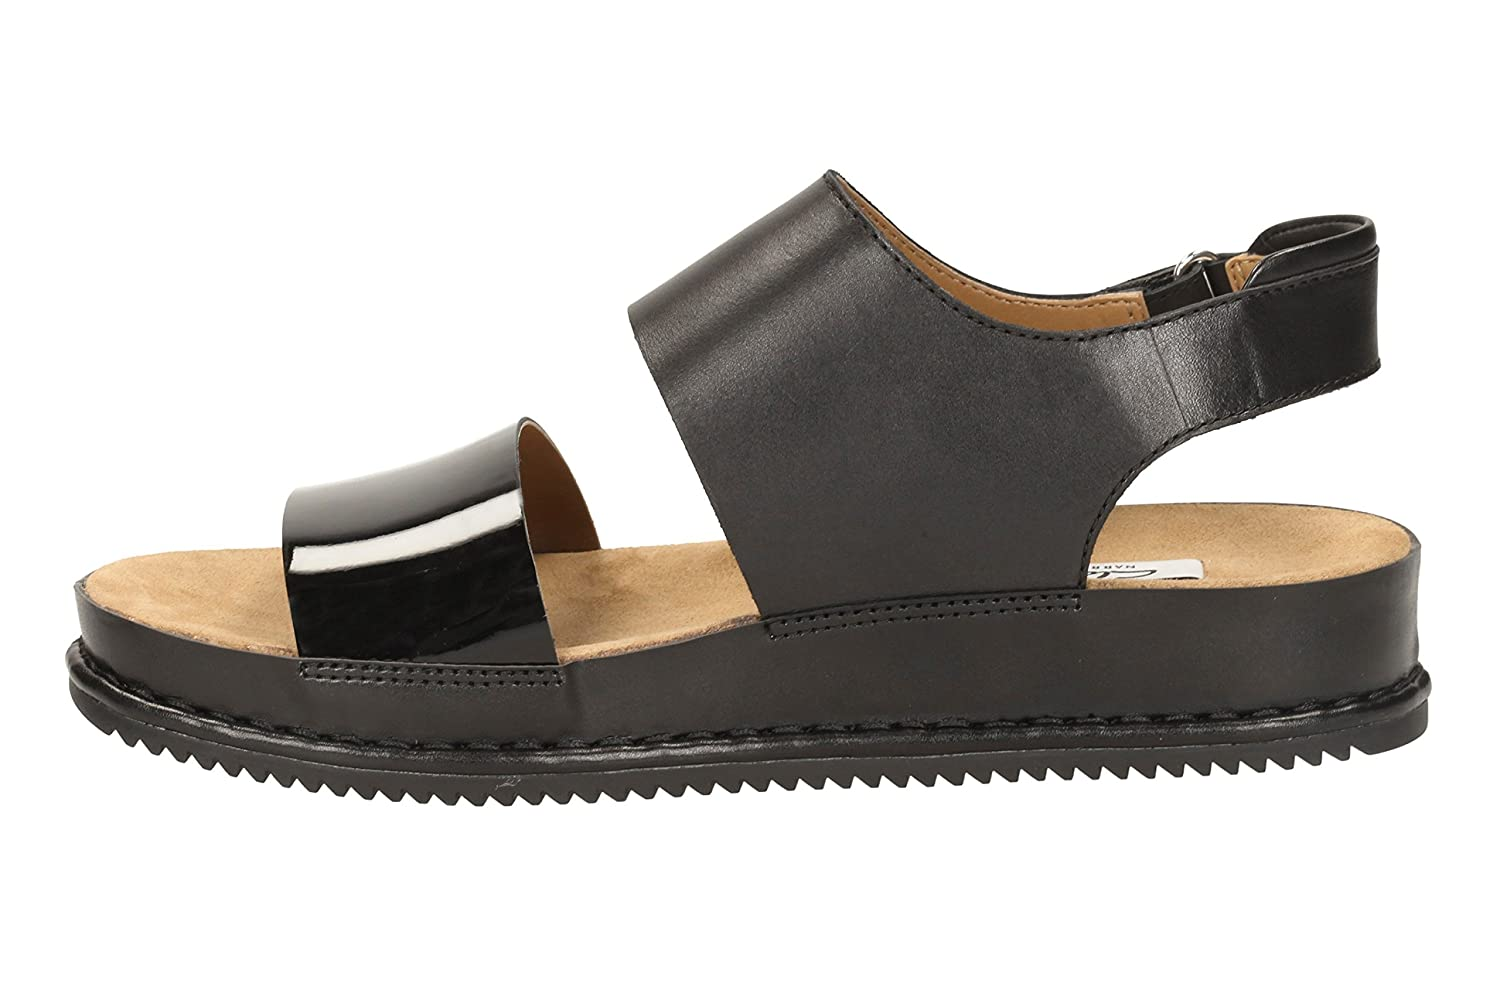 39798abdf Clarks Women s Alderlake Sun Leather Fashion Sandals  Buy Online at Low  Prices in India - Amazon.in